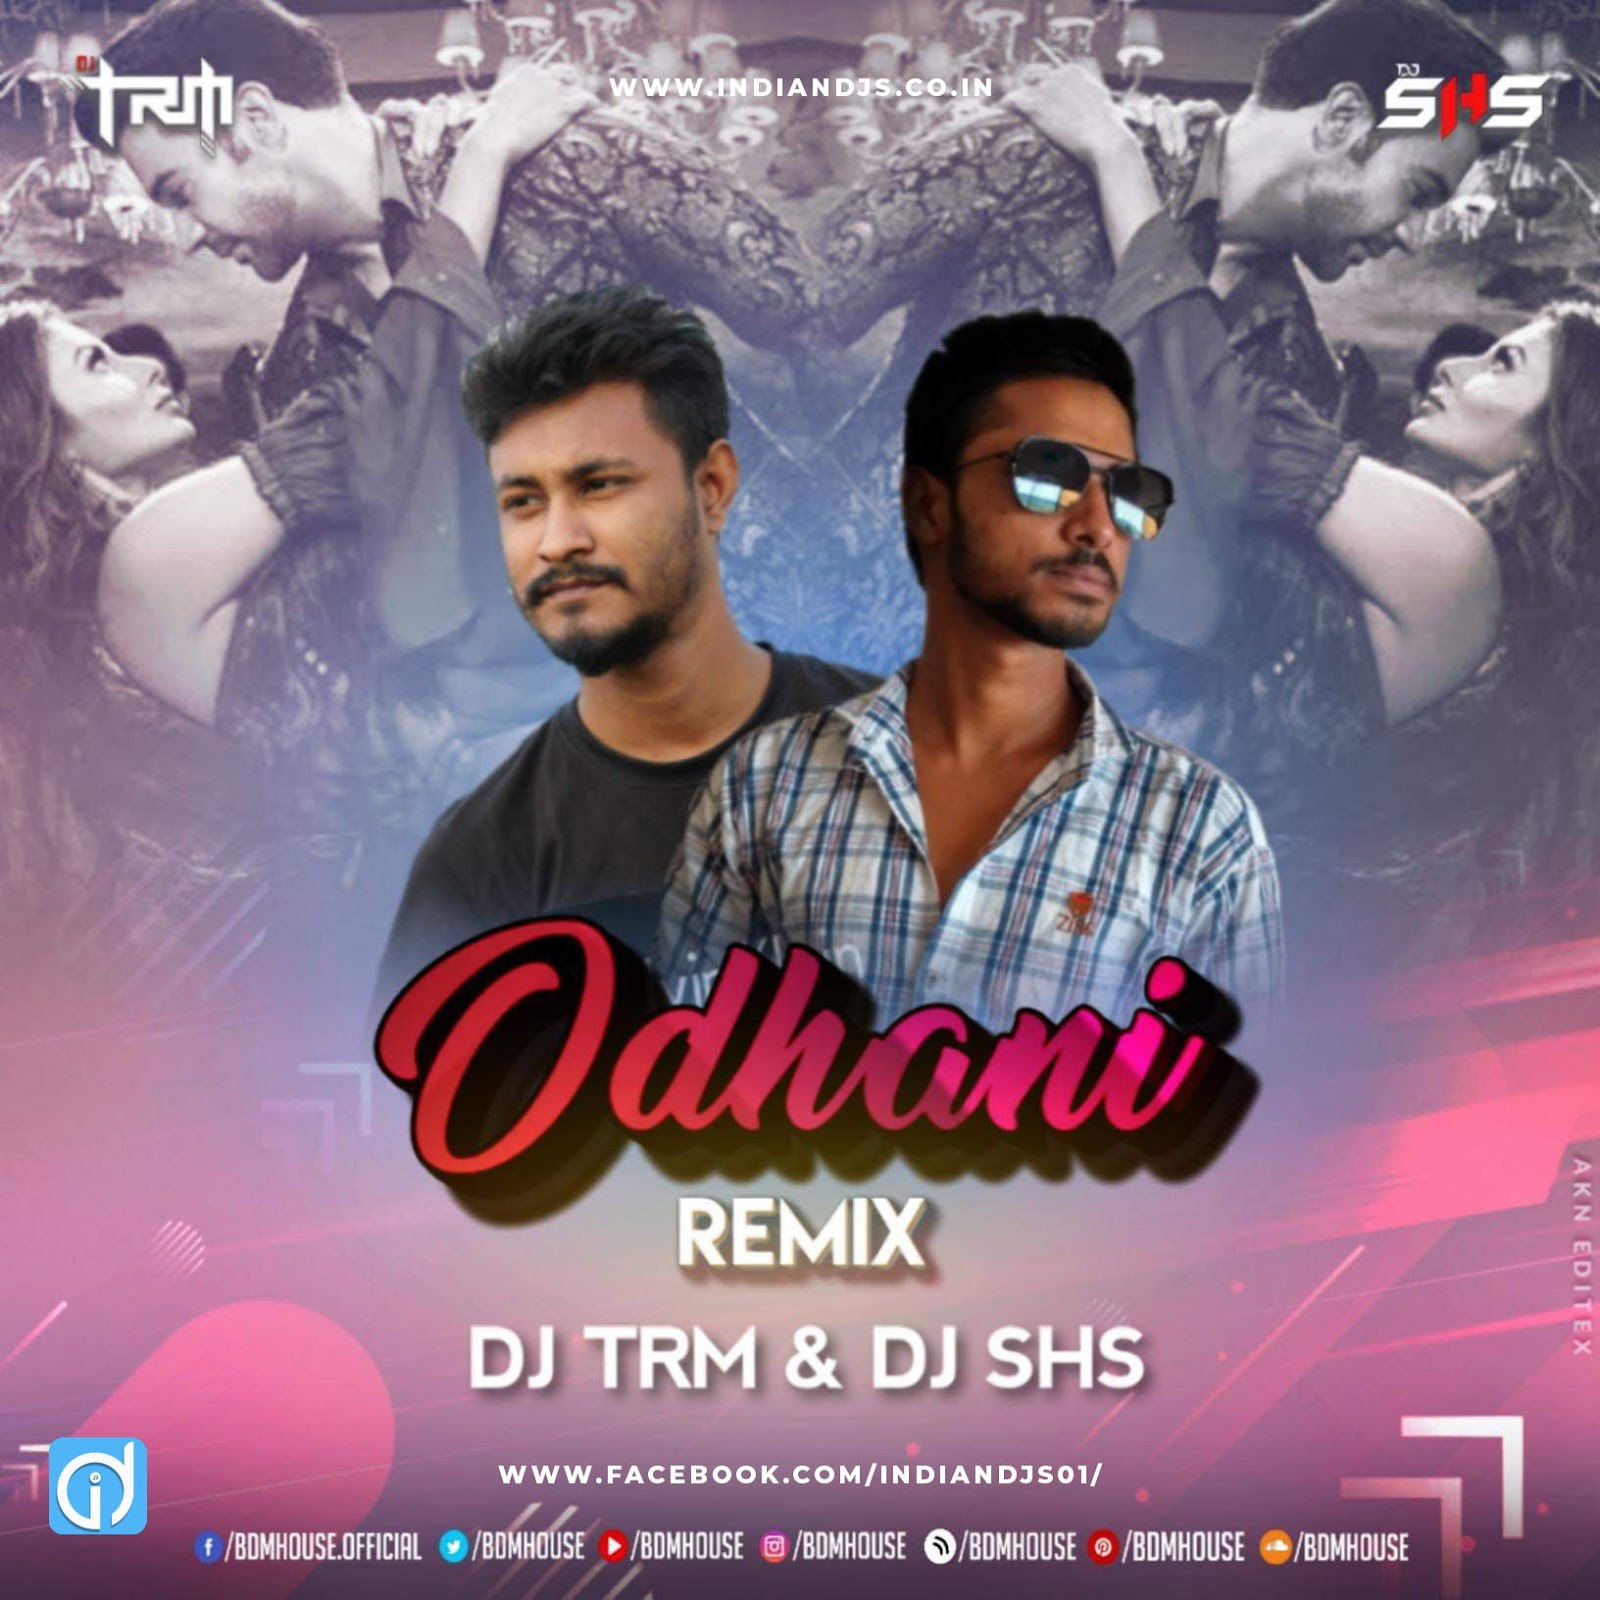 ID,INDIANDJS,INDIANDJS.CO.IN, djs song,bollywood song mp3 download,hindi song,dj remixes,download djs,dj remixes song download,songs download dj remix,indian dj remixes,remix dj song,hindi song in dj,